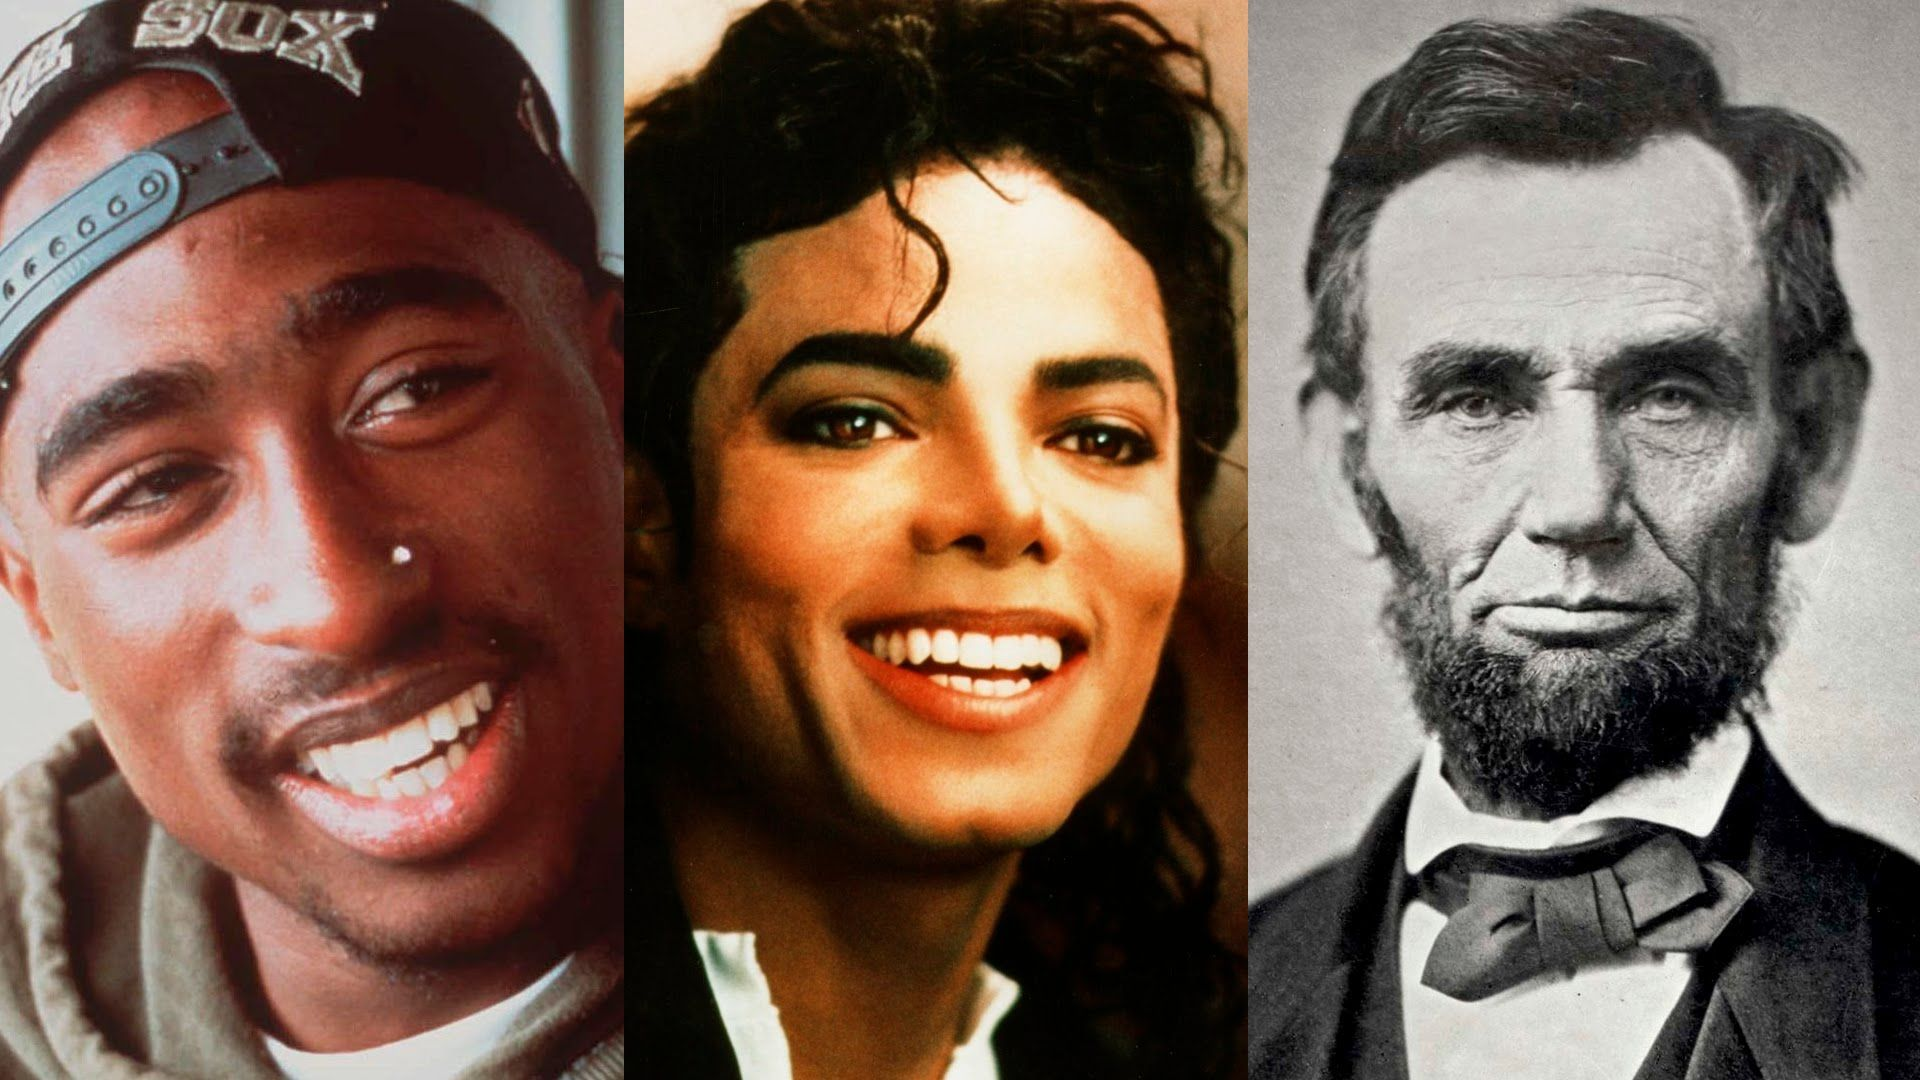 You would never have guessed these 5 celebrities are South African